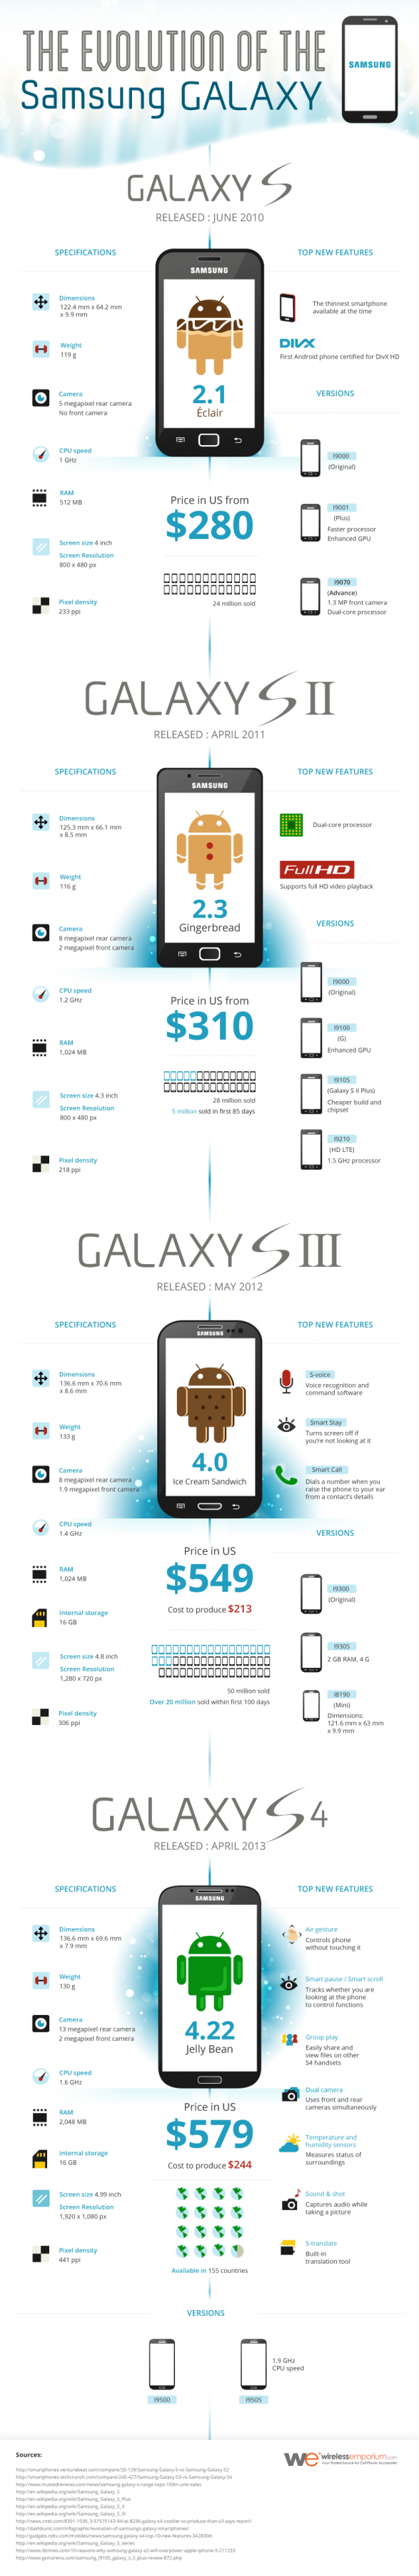 The Evolution of Samsung Galaxy